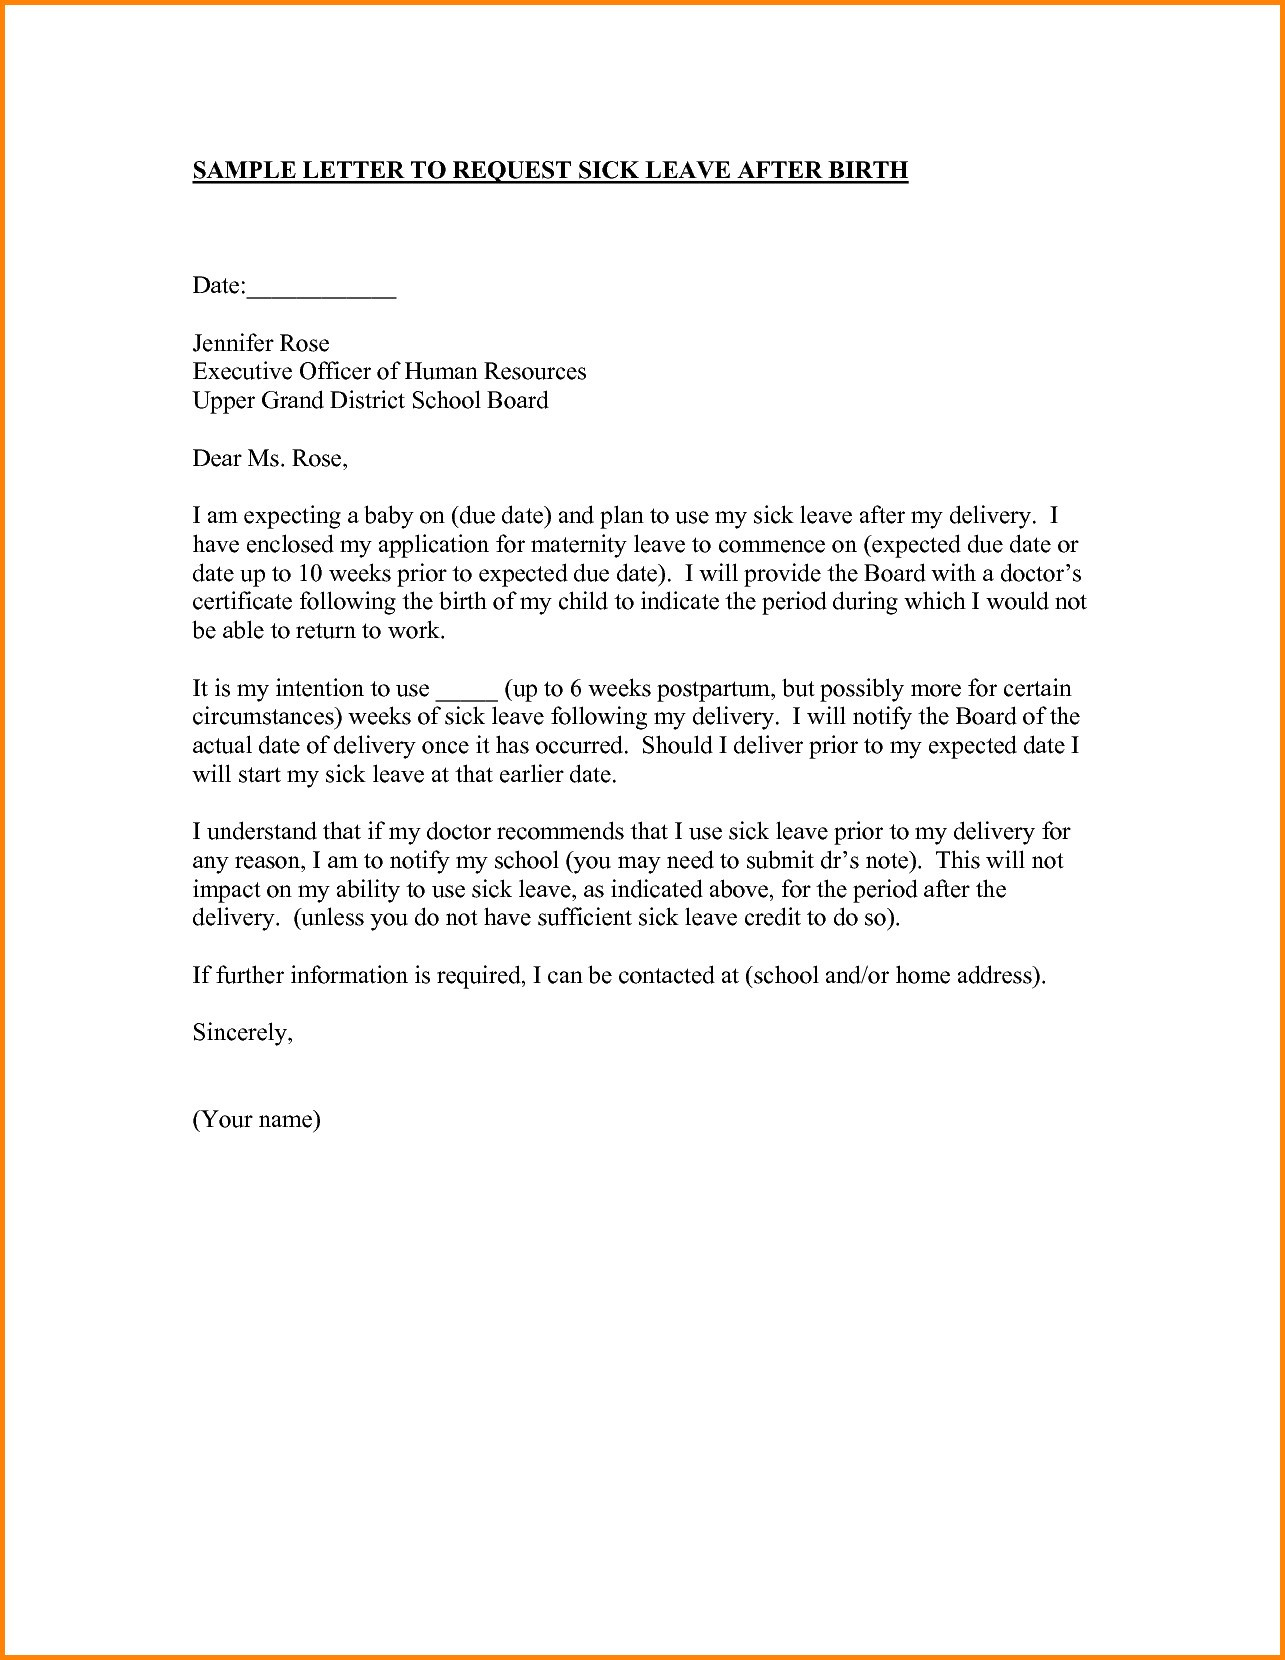 return to work letter after maternity leave template example-Maternity Return To Work Letter From Employer Template Best Resuming Work After Maternity Leave Going Back To Work After 17-j